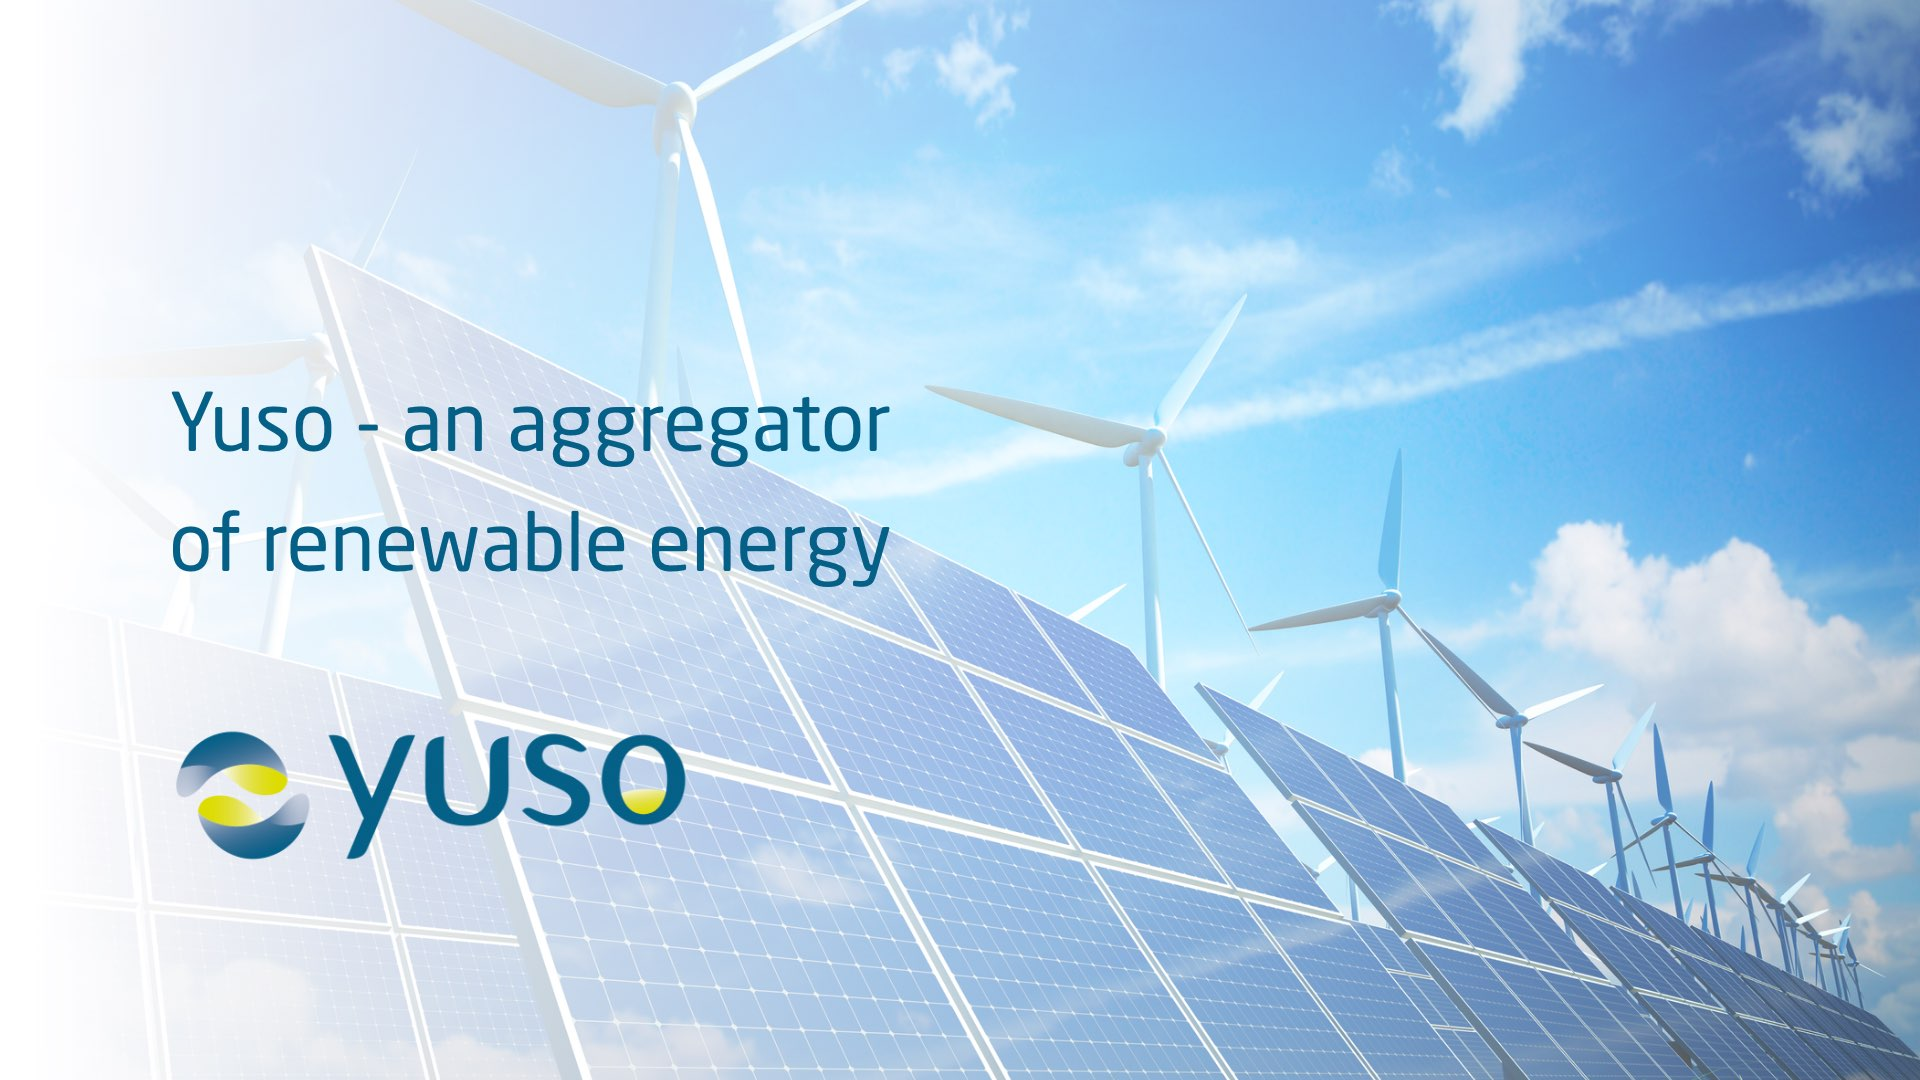 Yuso aggregator renewable energy